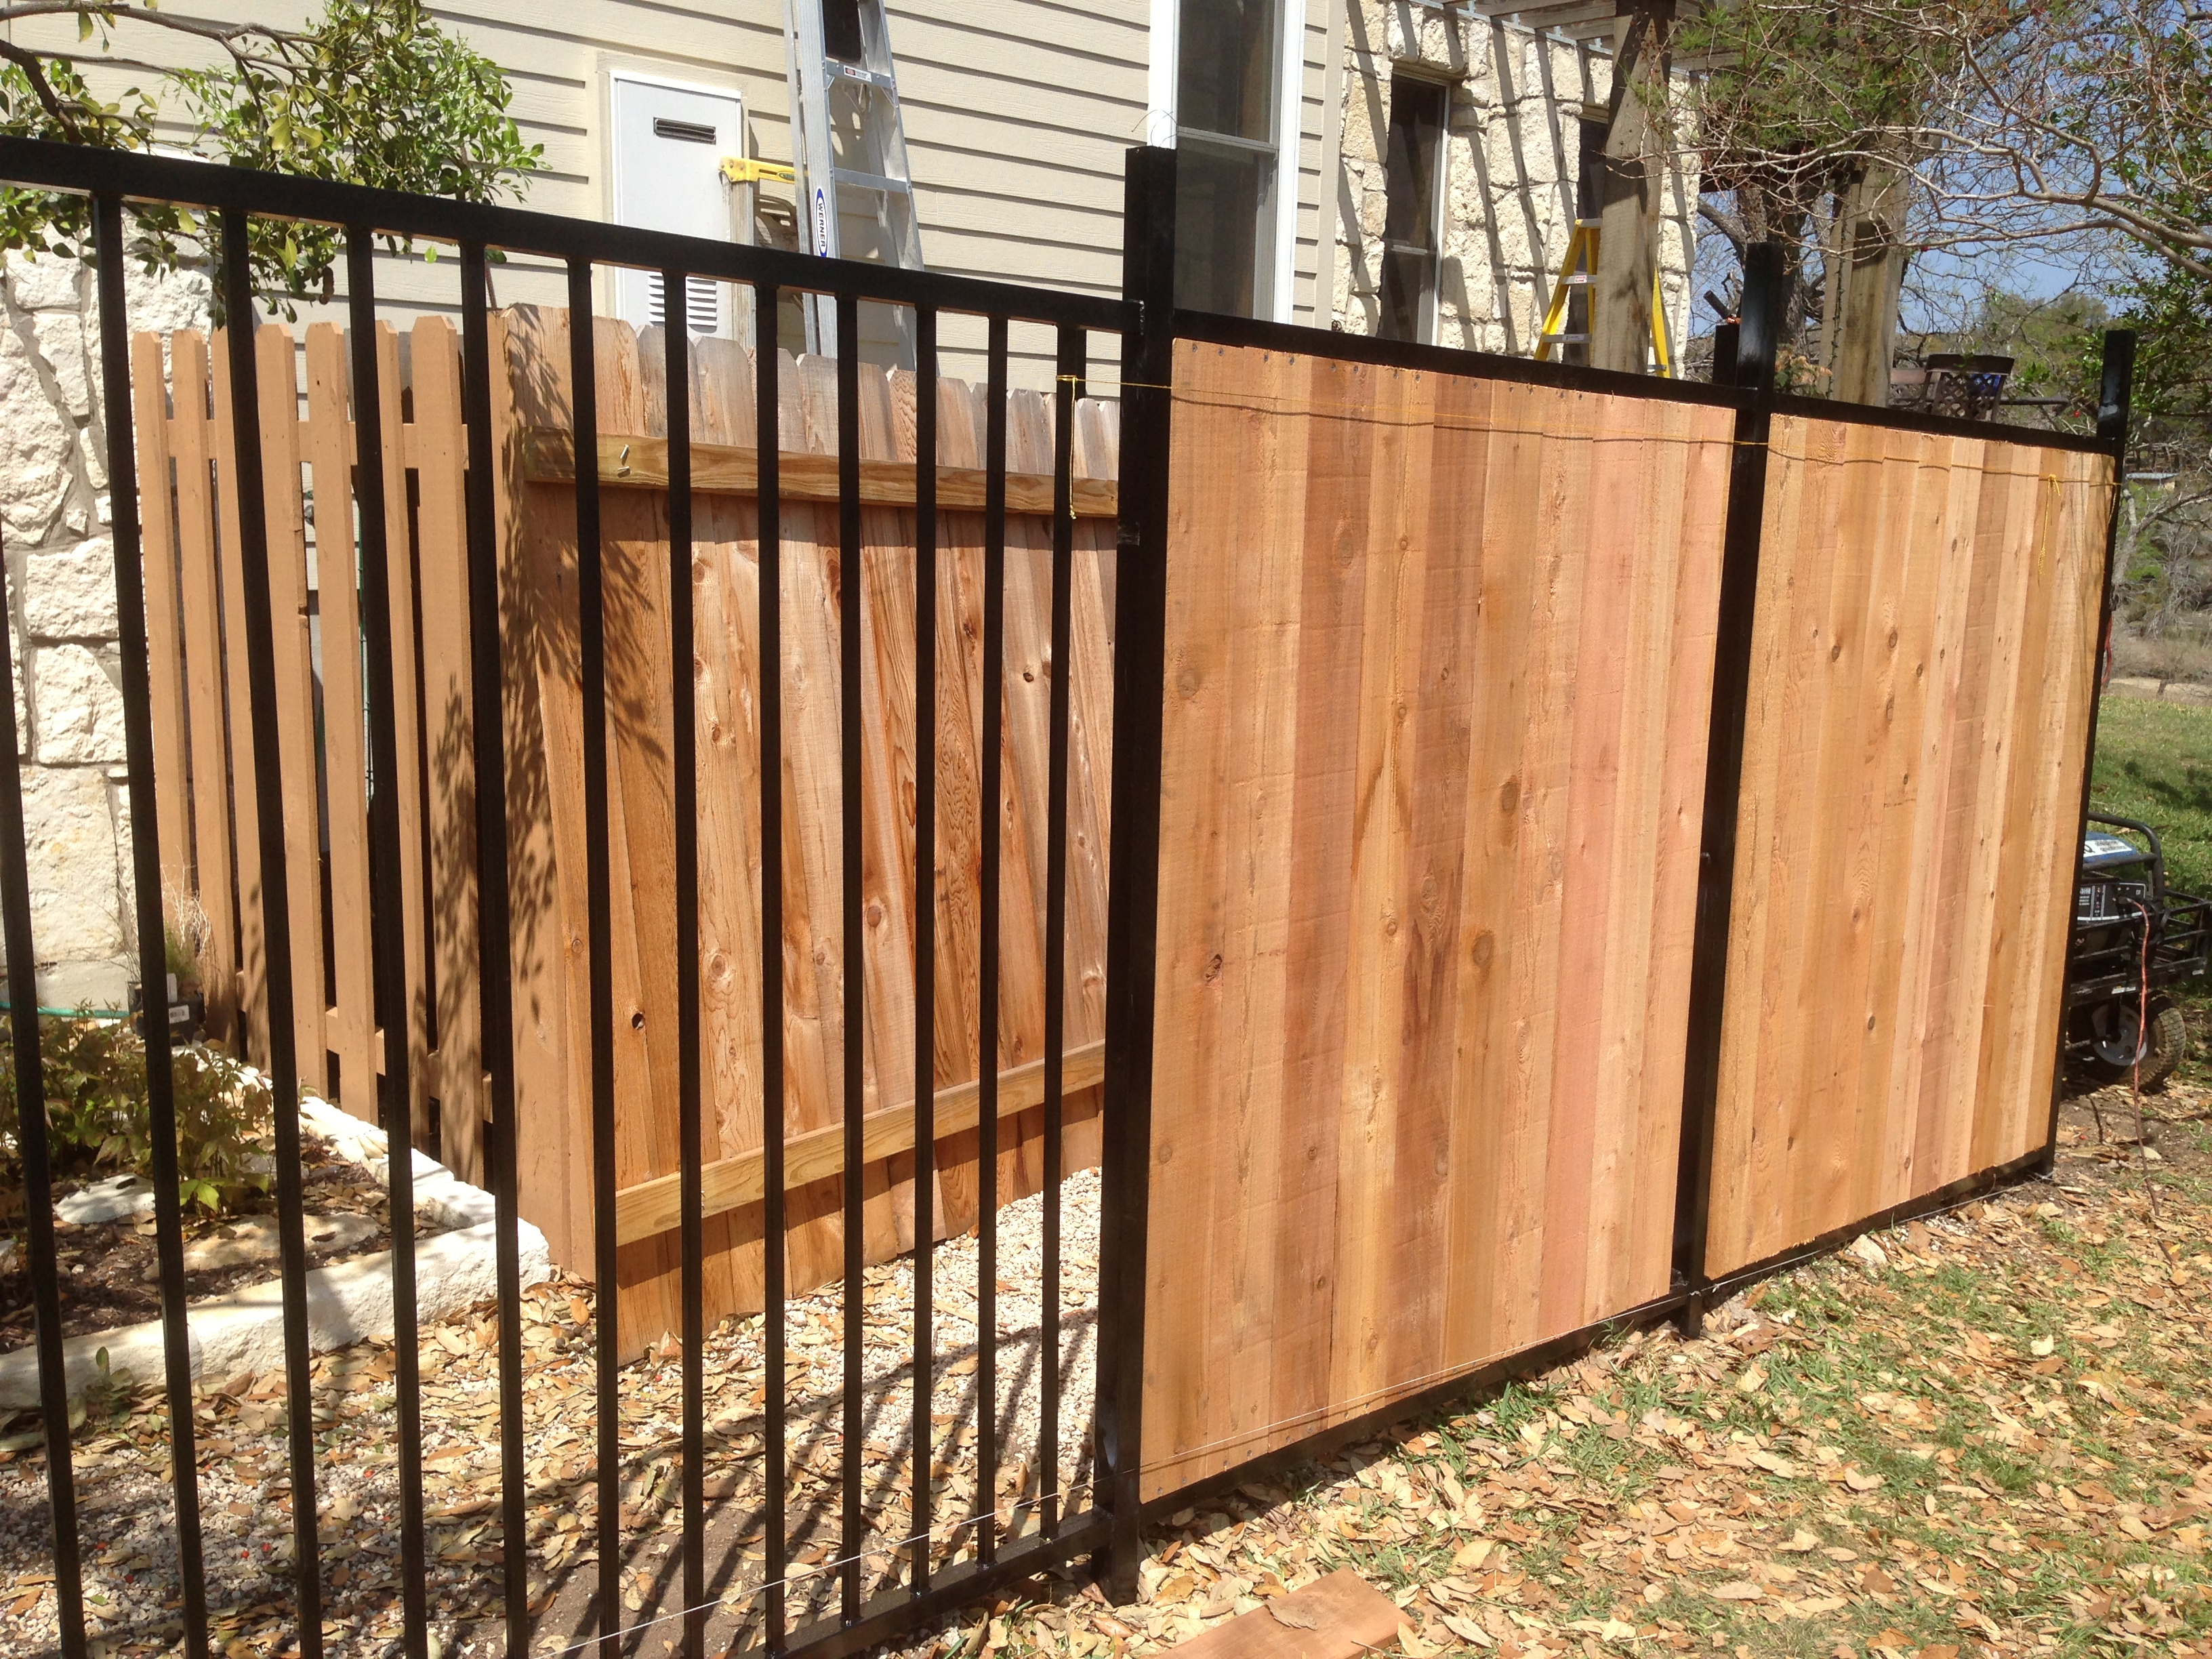 Fence Cool Wrought Iron Wood Gates And Fences Awesome Electric pertaining to measurements 3264 X 2448